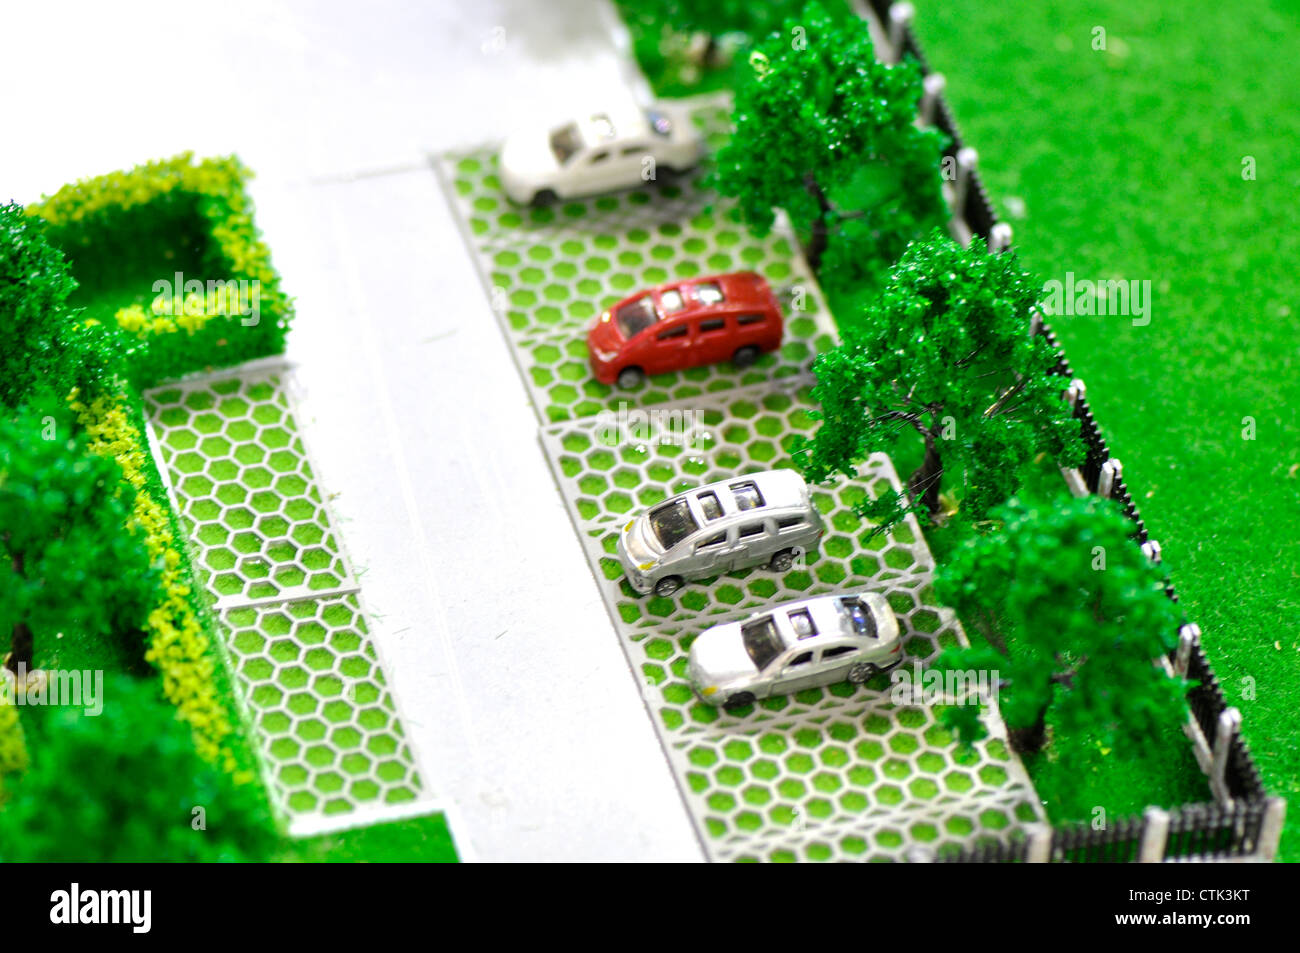 model of parking place with several cars, grass and tree,  - Stock Image